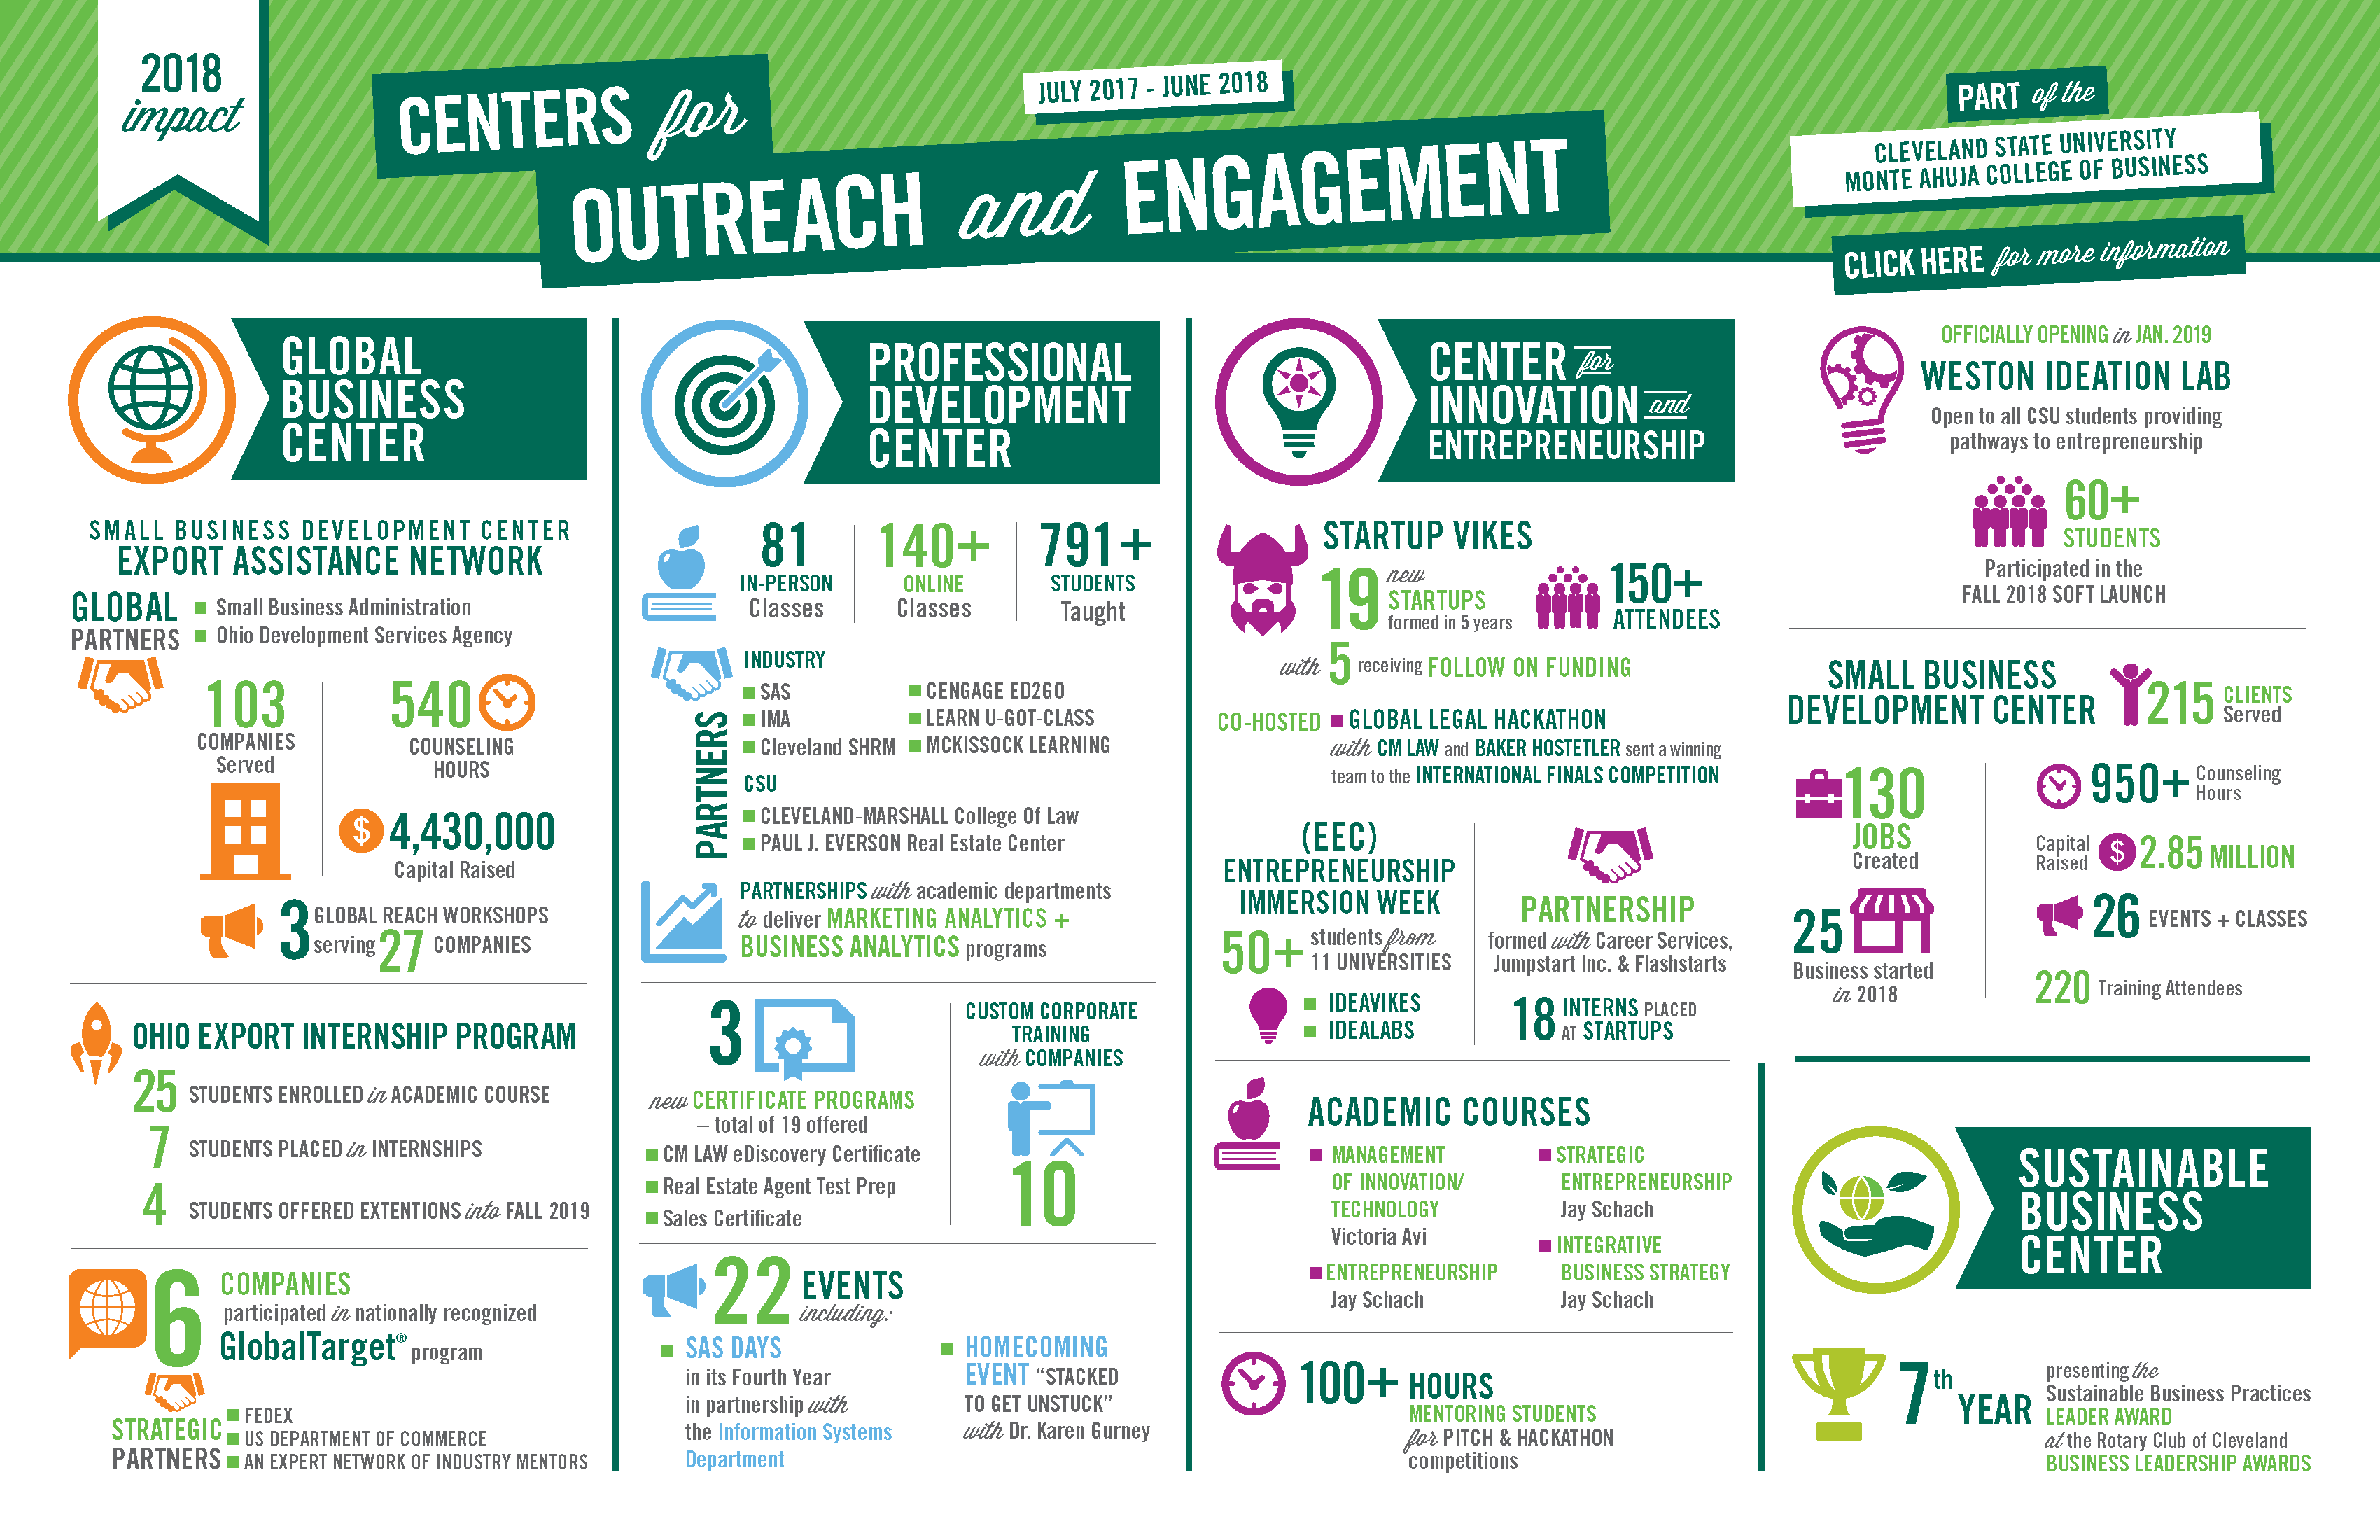 Centers for Outreach and Engagement 2018 Impact Report